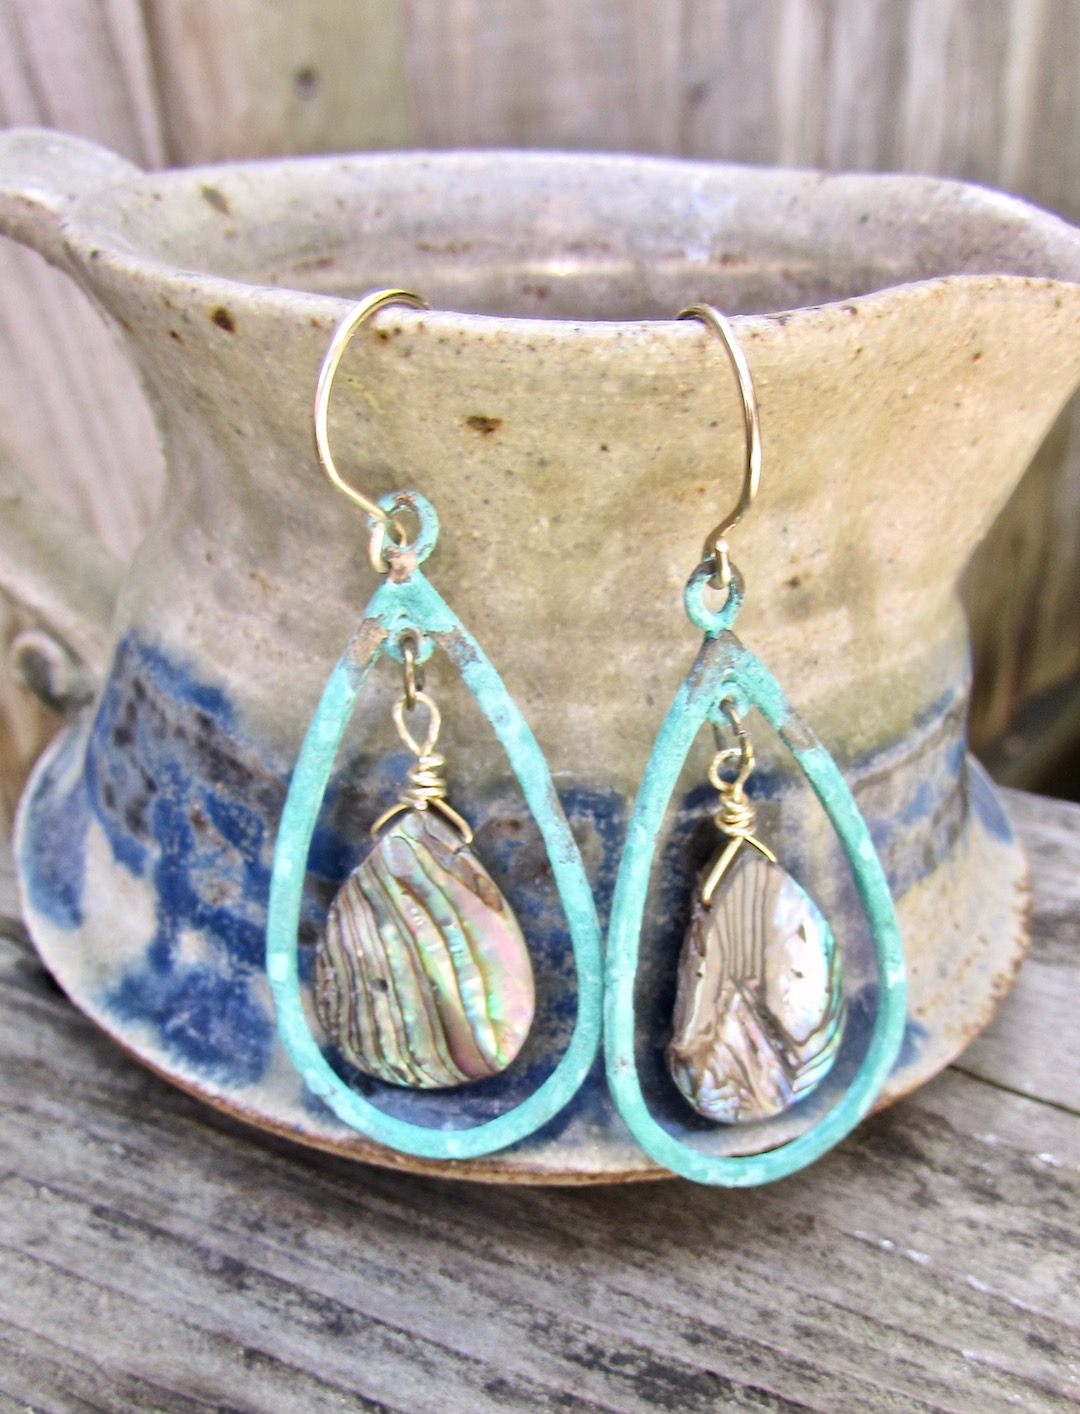 Simple abalone shell drop earrings, can really help you spring into springtime!